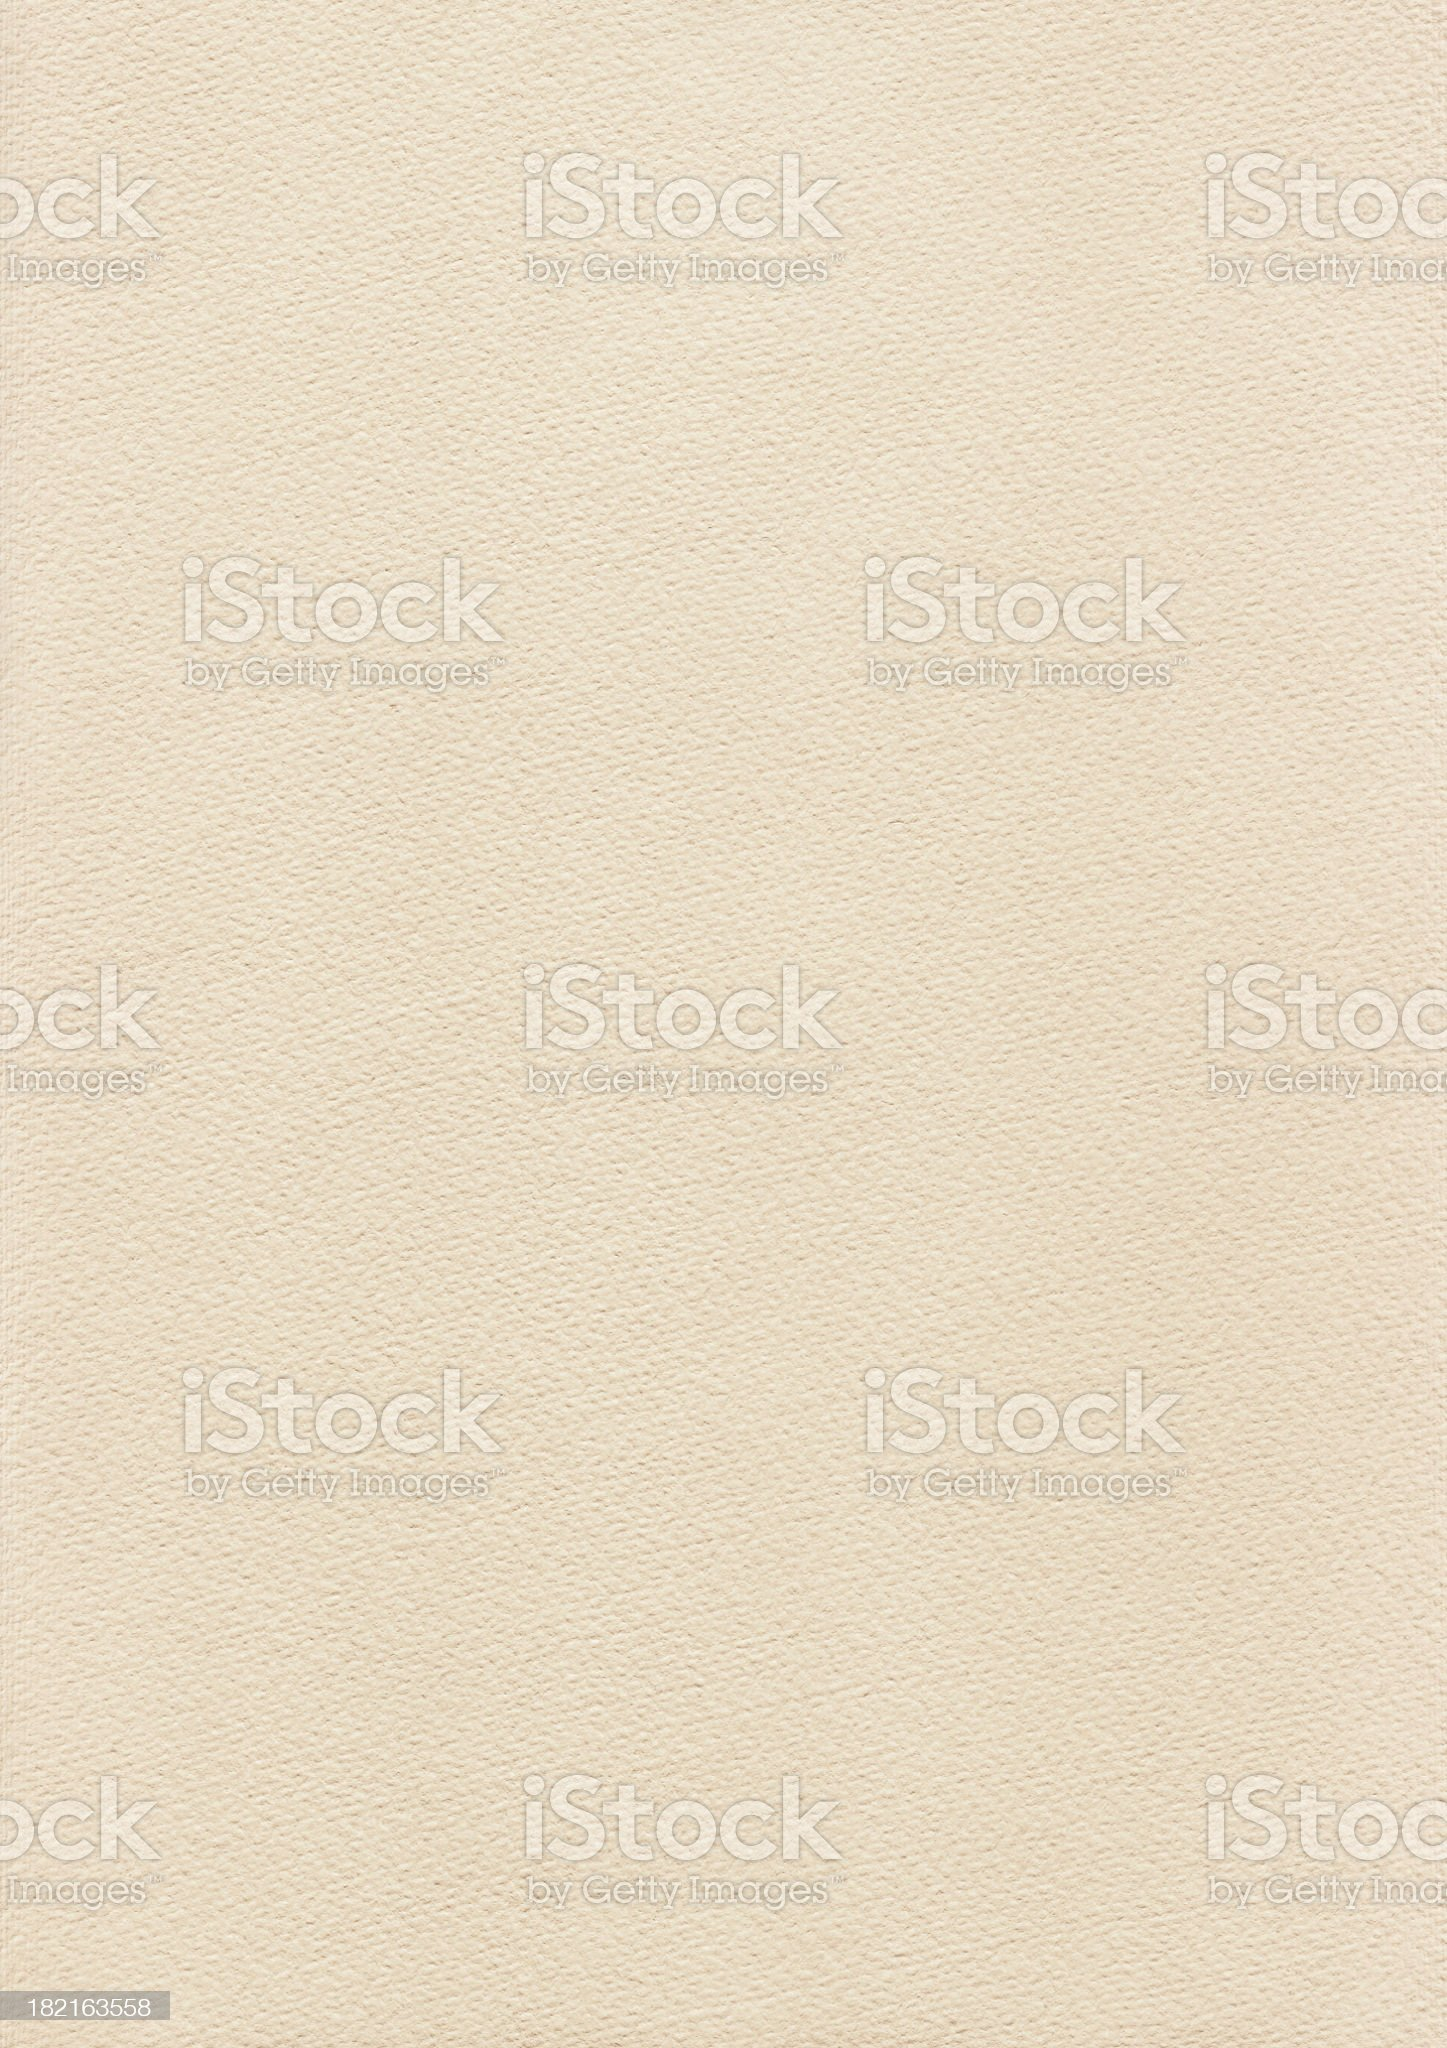 High Resolution Beige Card Stock Watercolor Paper Texture royalty-free stock photo